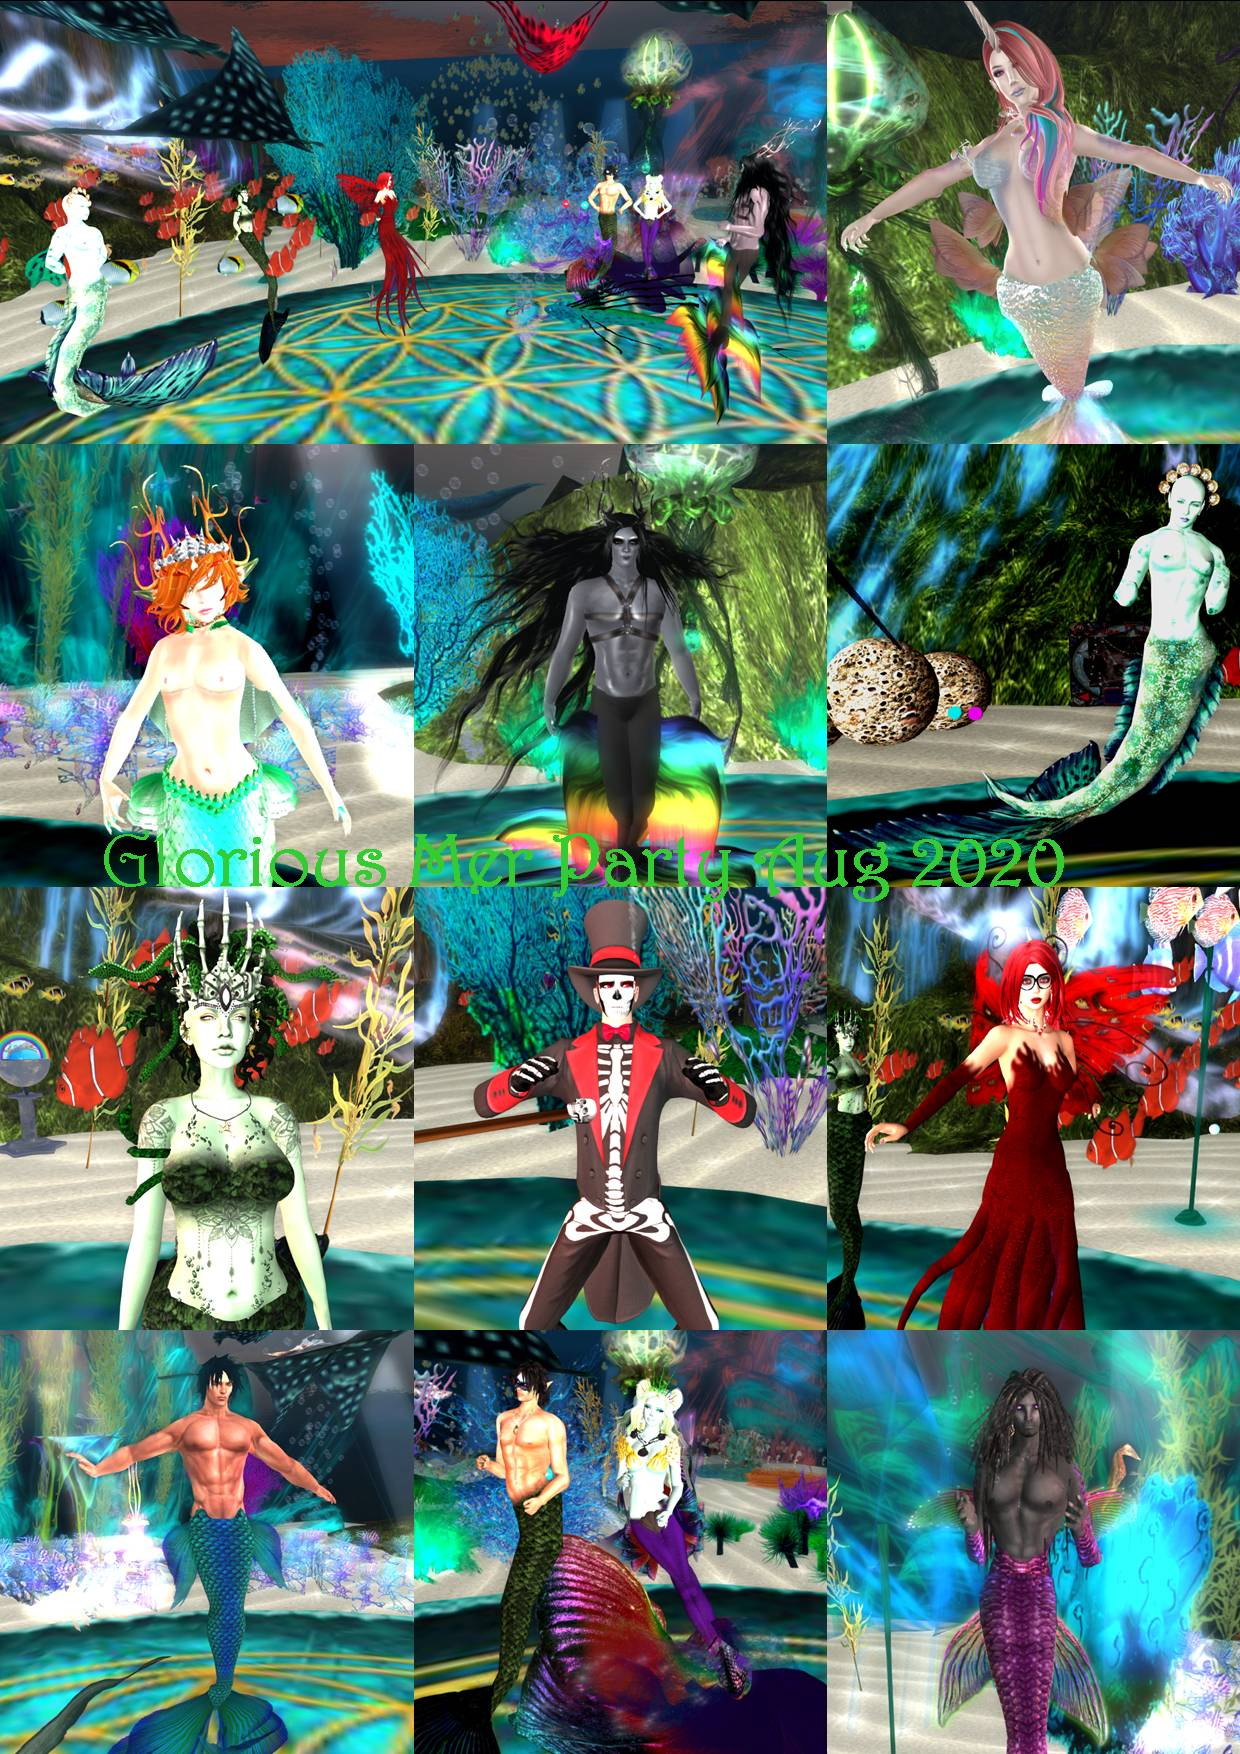 GLORIOUS MER PARTY COLLAGE AUG 2020